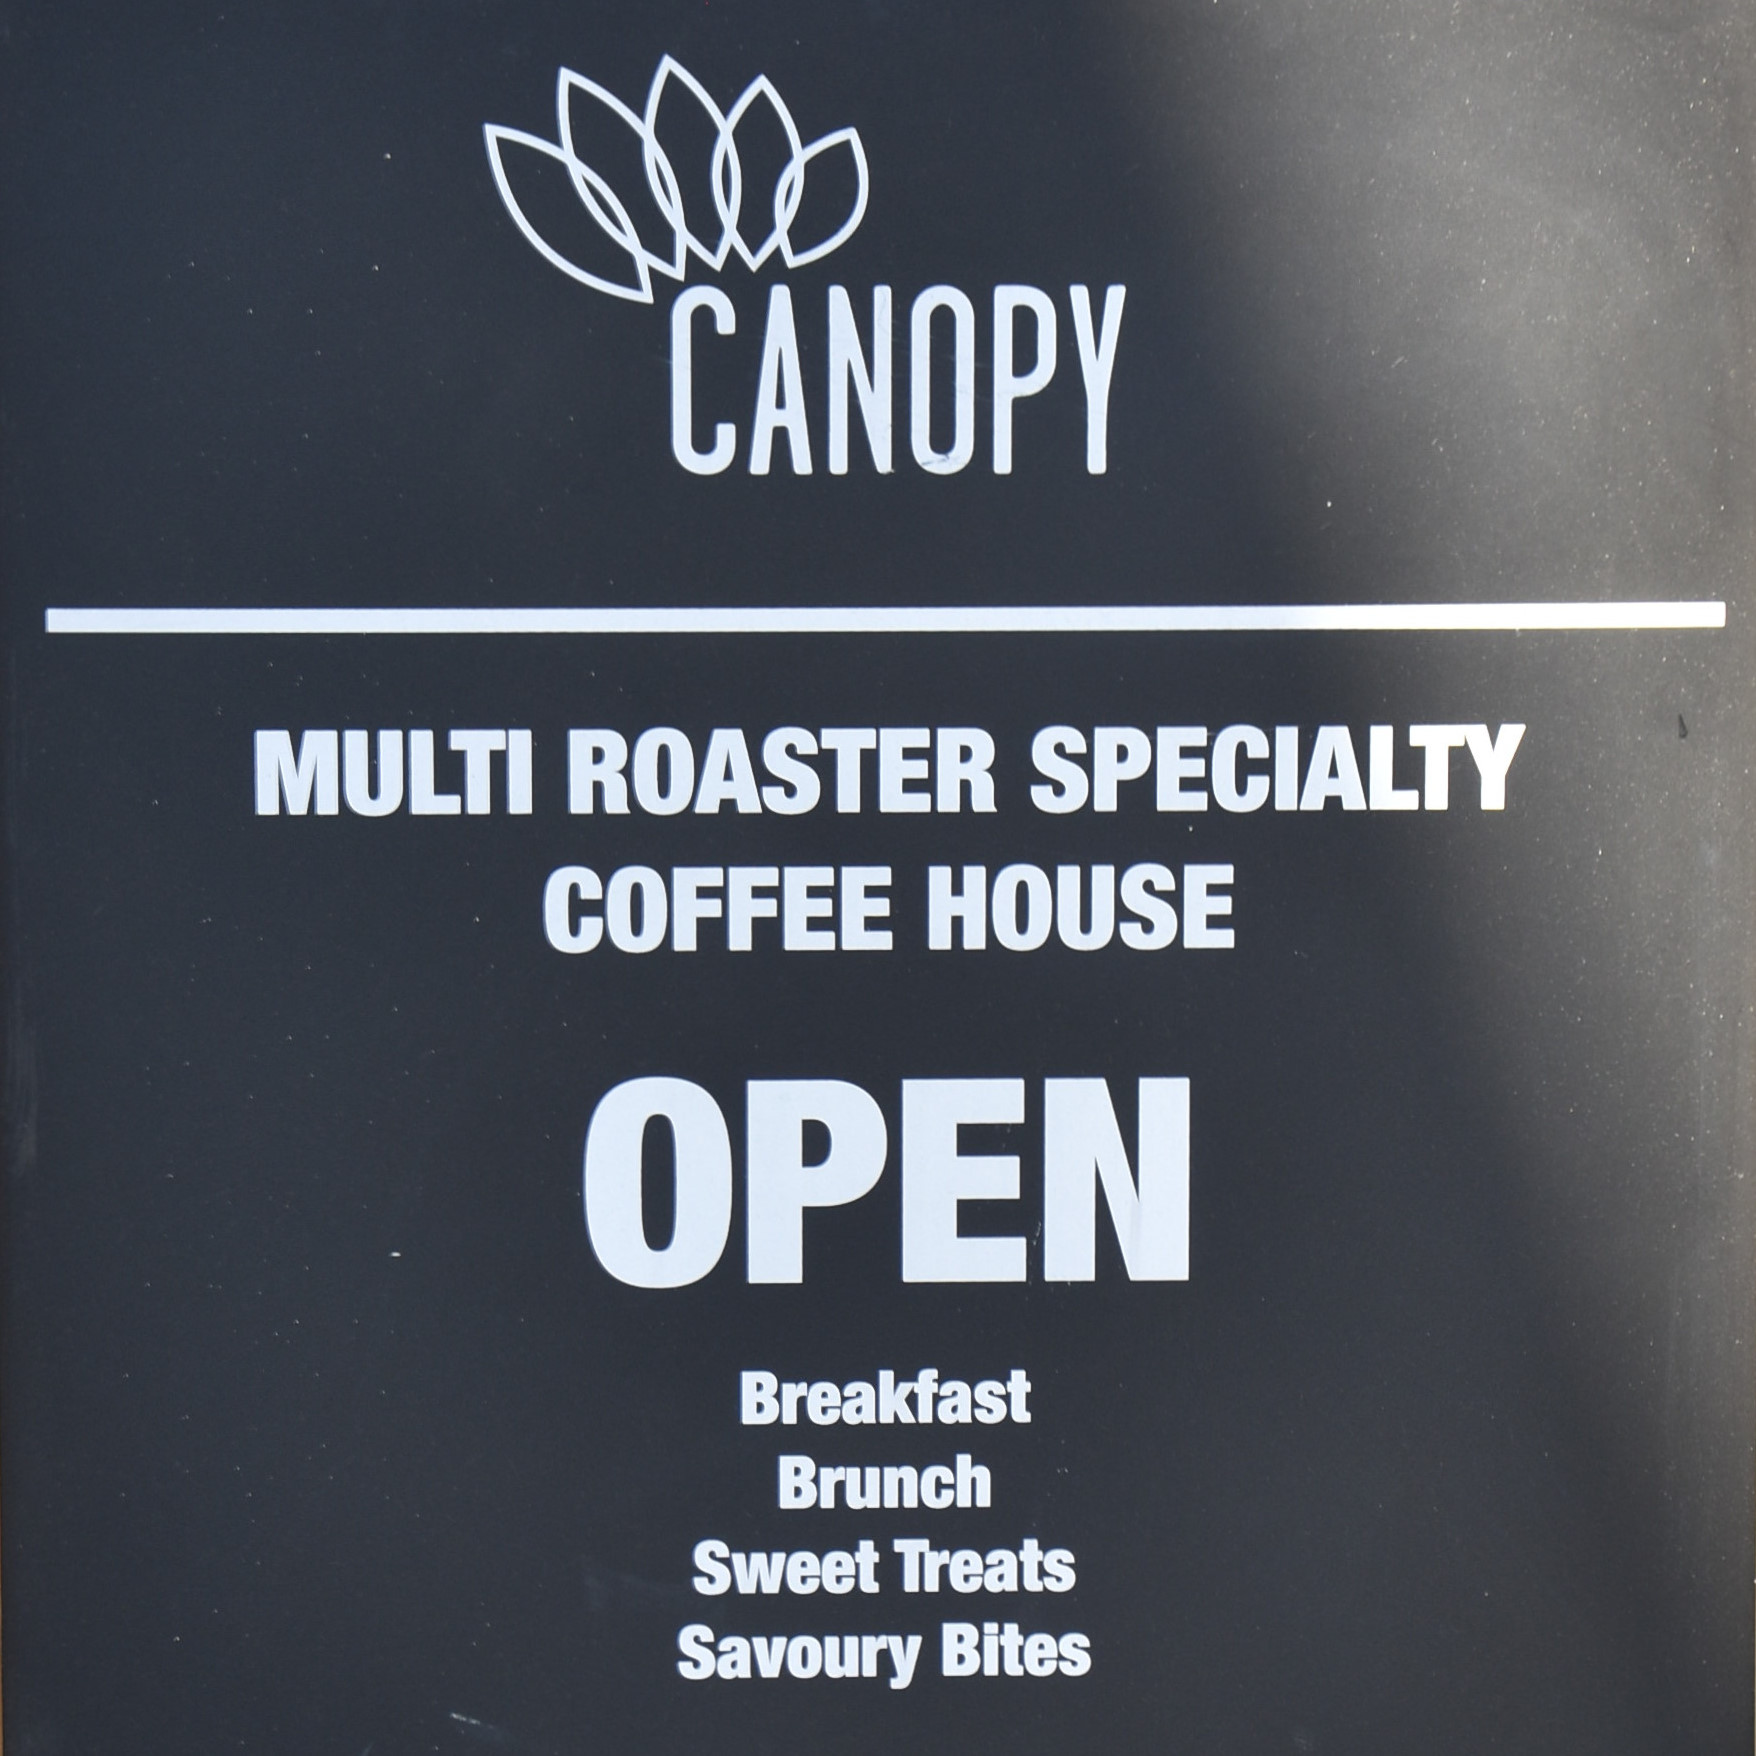 A sight for sore eyes: the A-board proclaiming that Canopy Coffee is now open after almost three months of enforced closure during the COVID-19 pandemic.